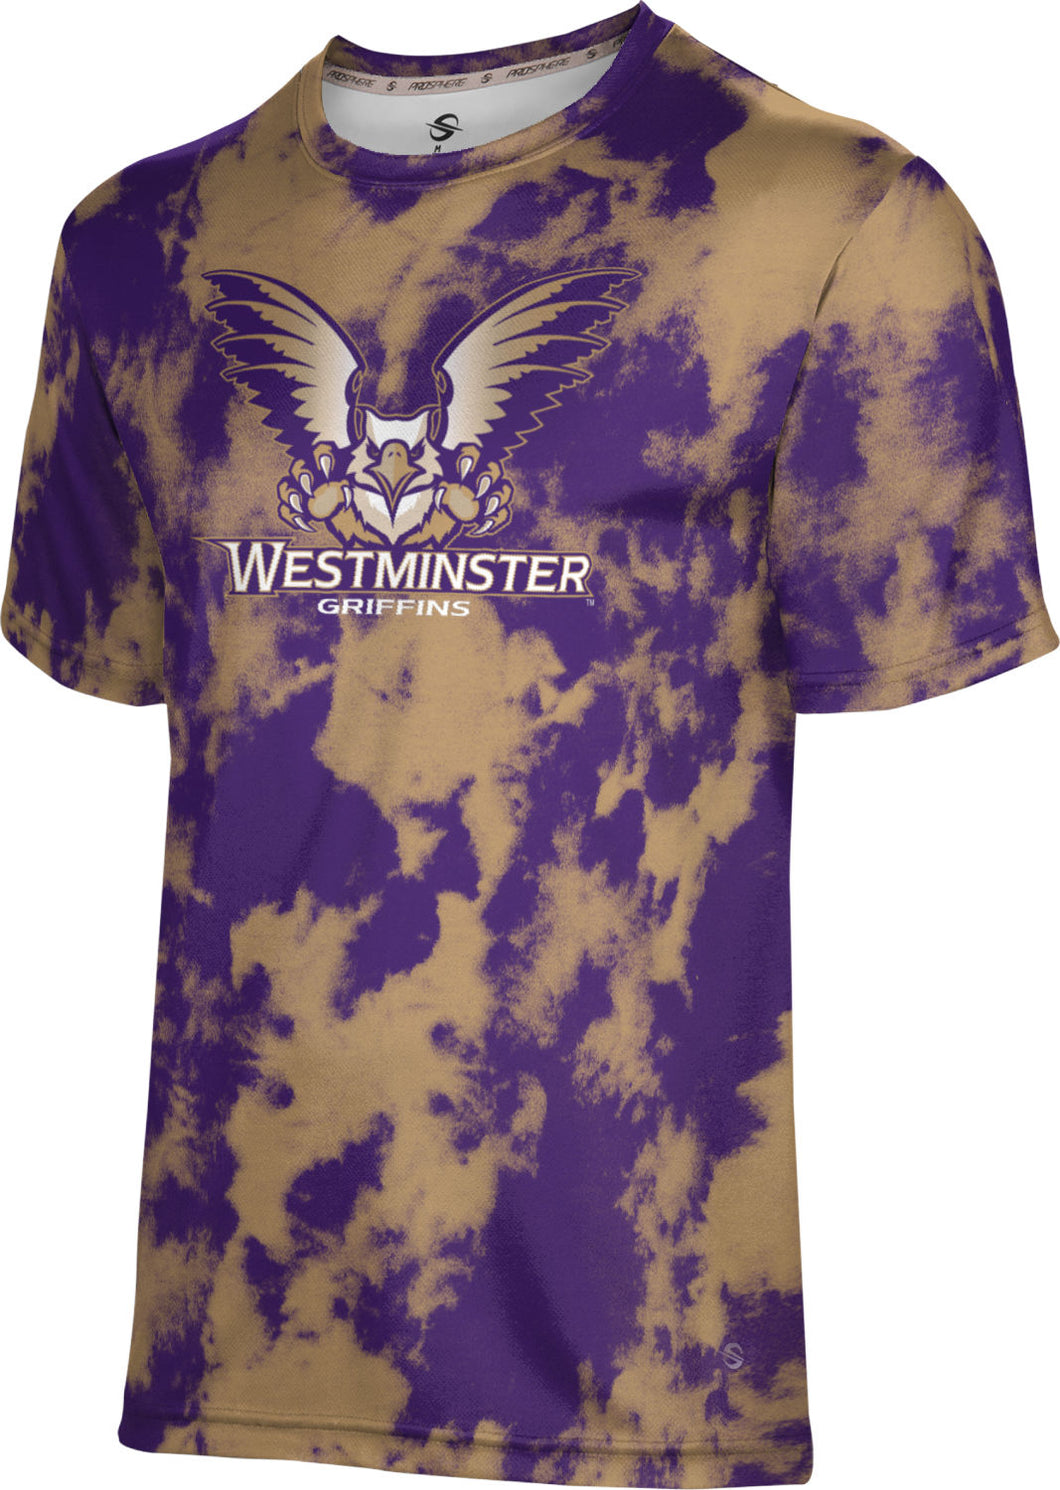 Westminster College: Boys' T-shirt - Grunge